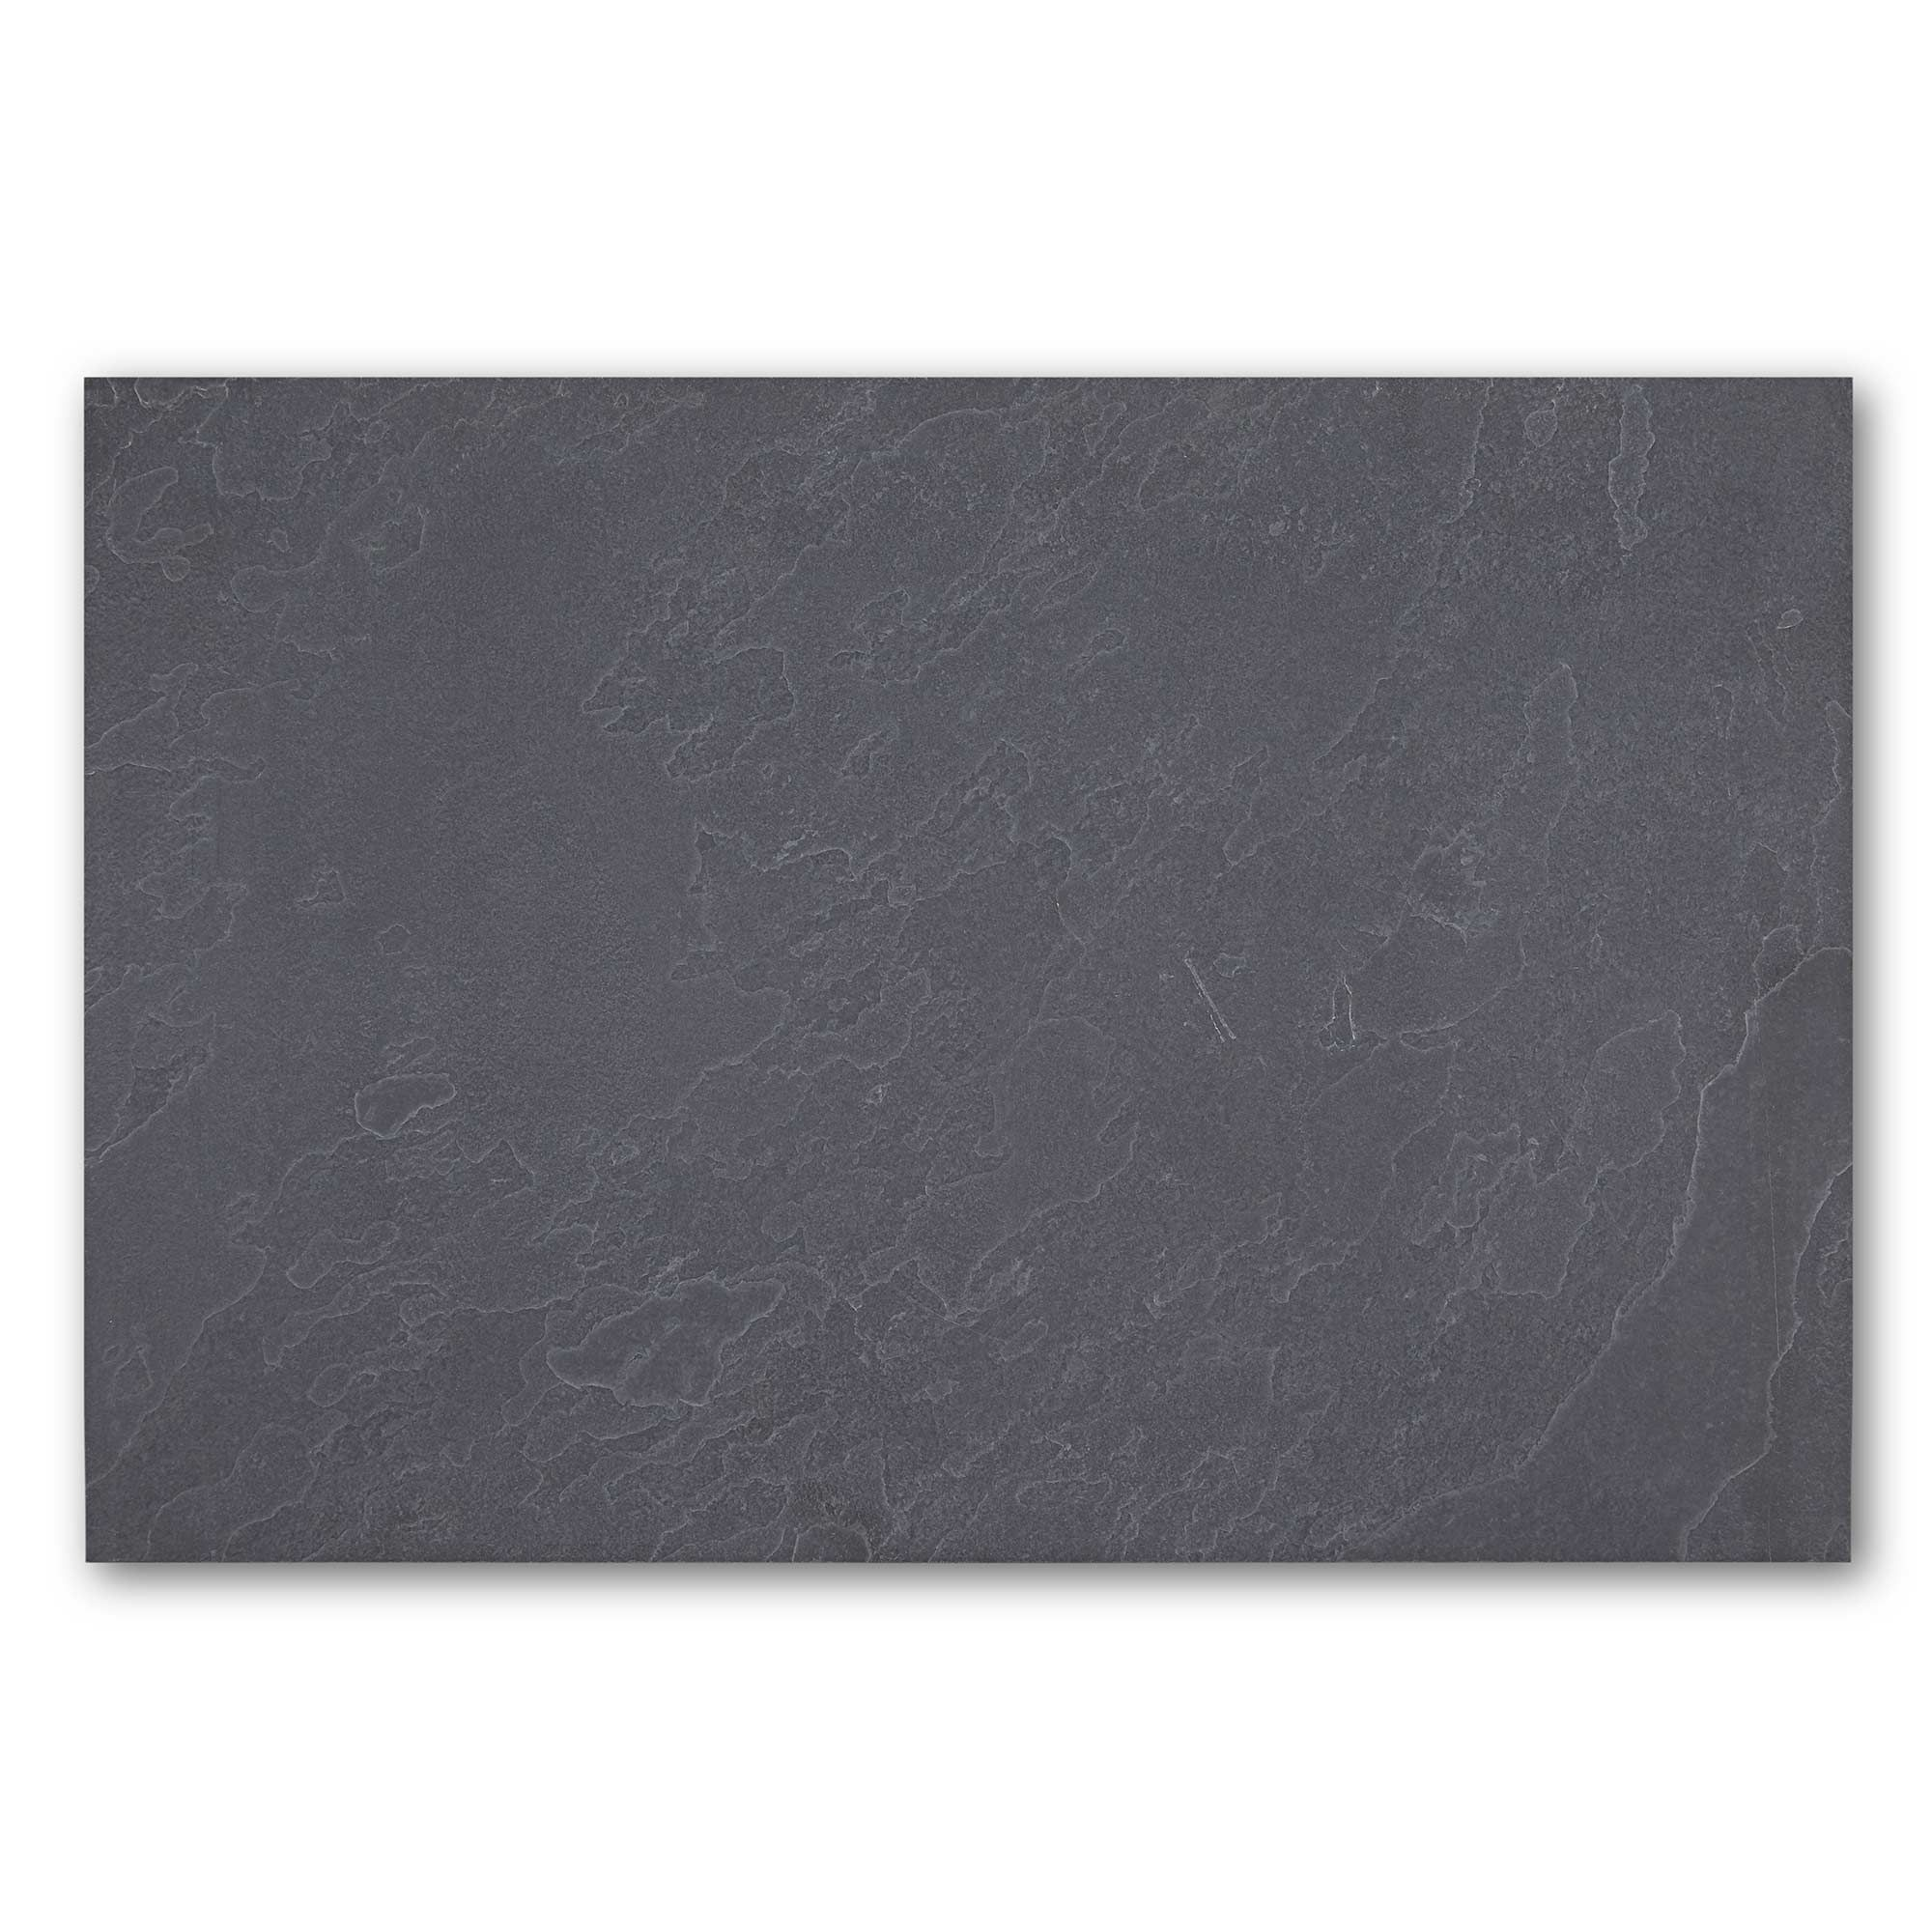 Urban Slate 60x40 Black/Grey